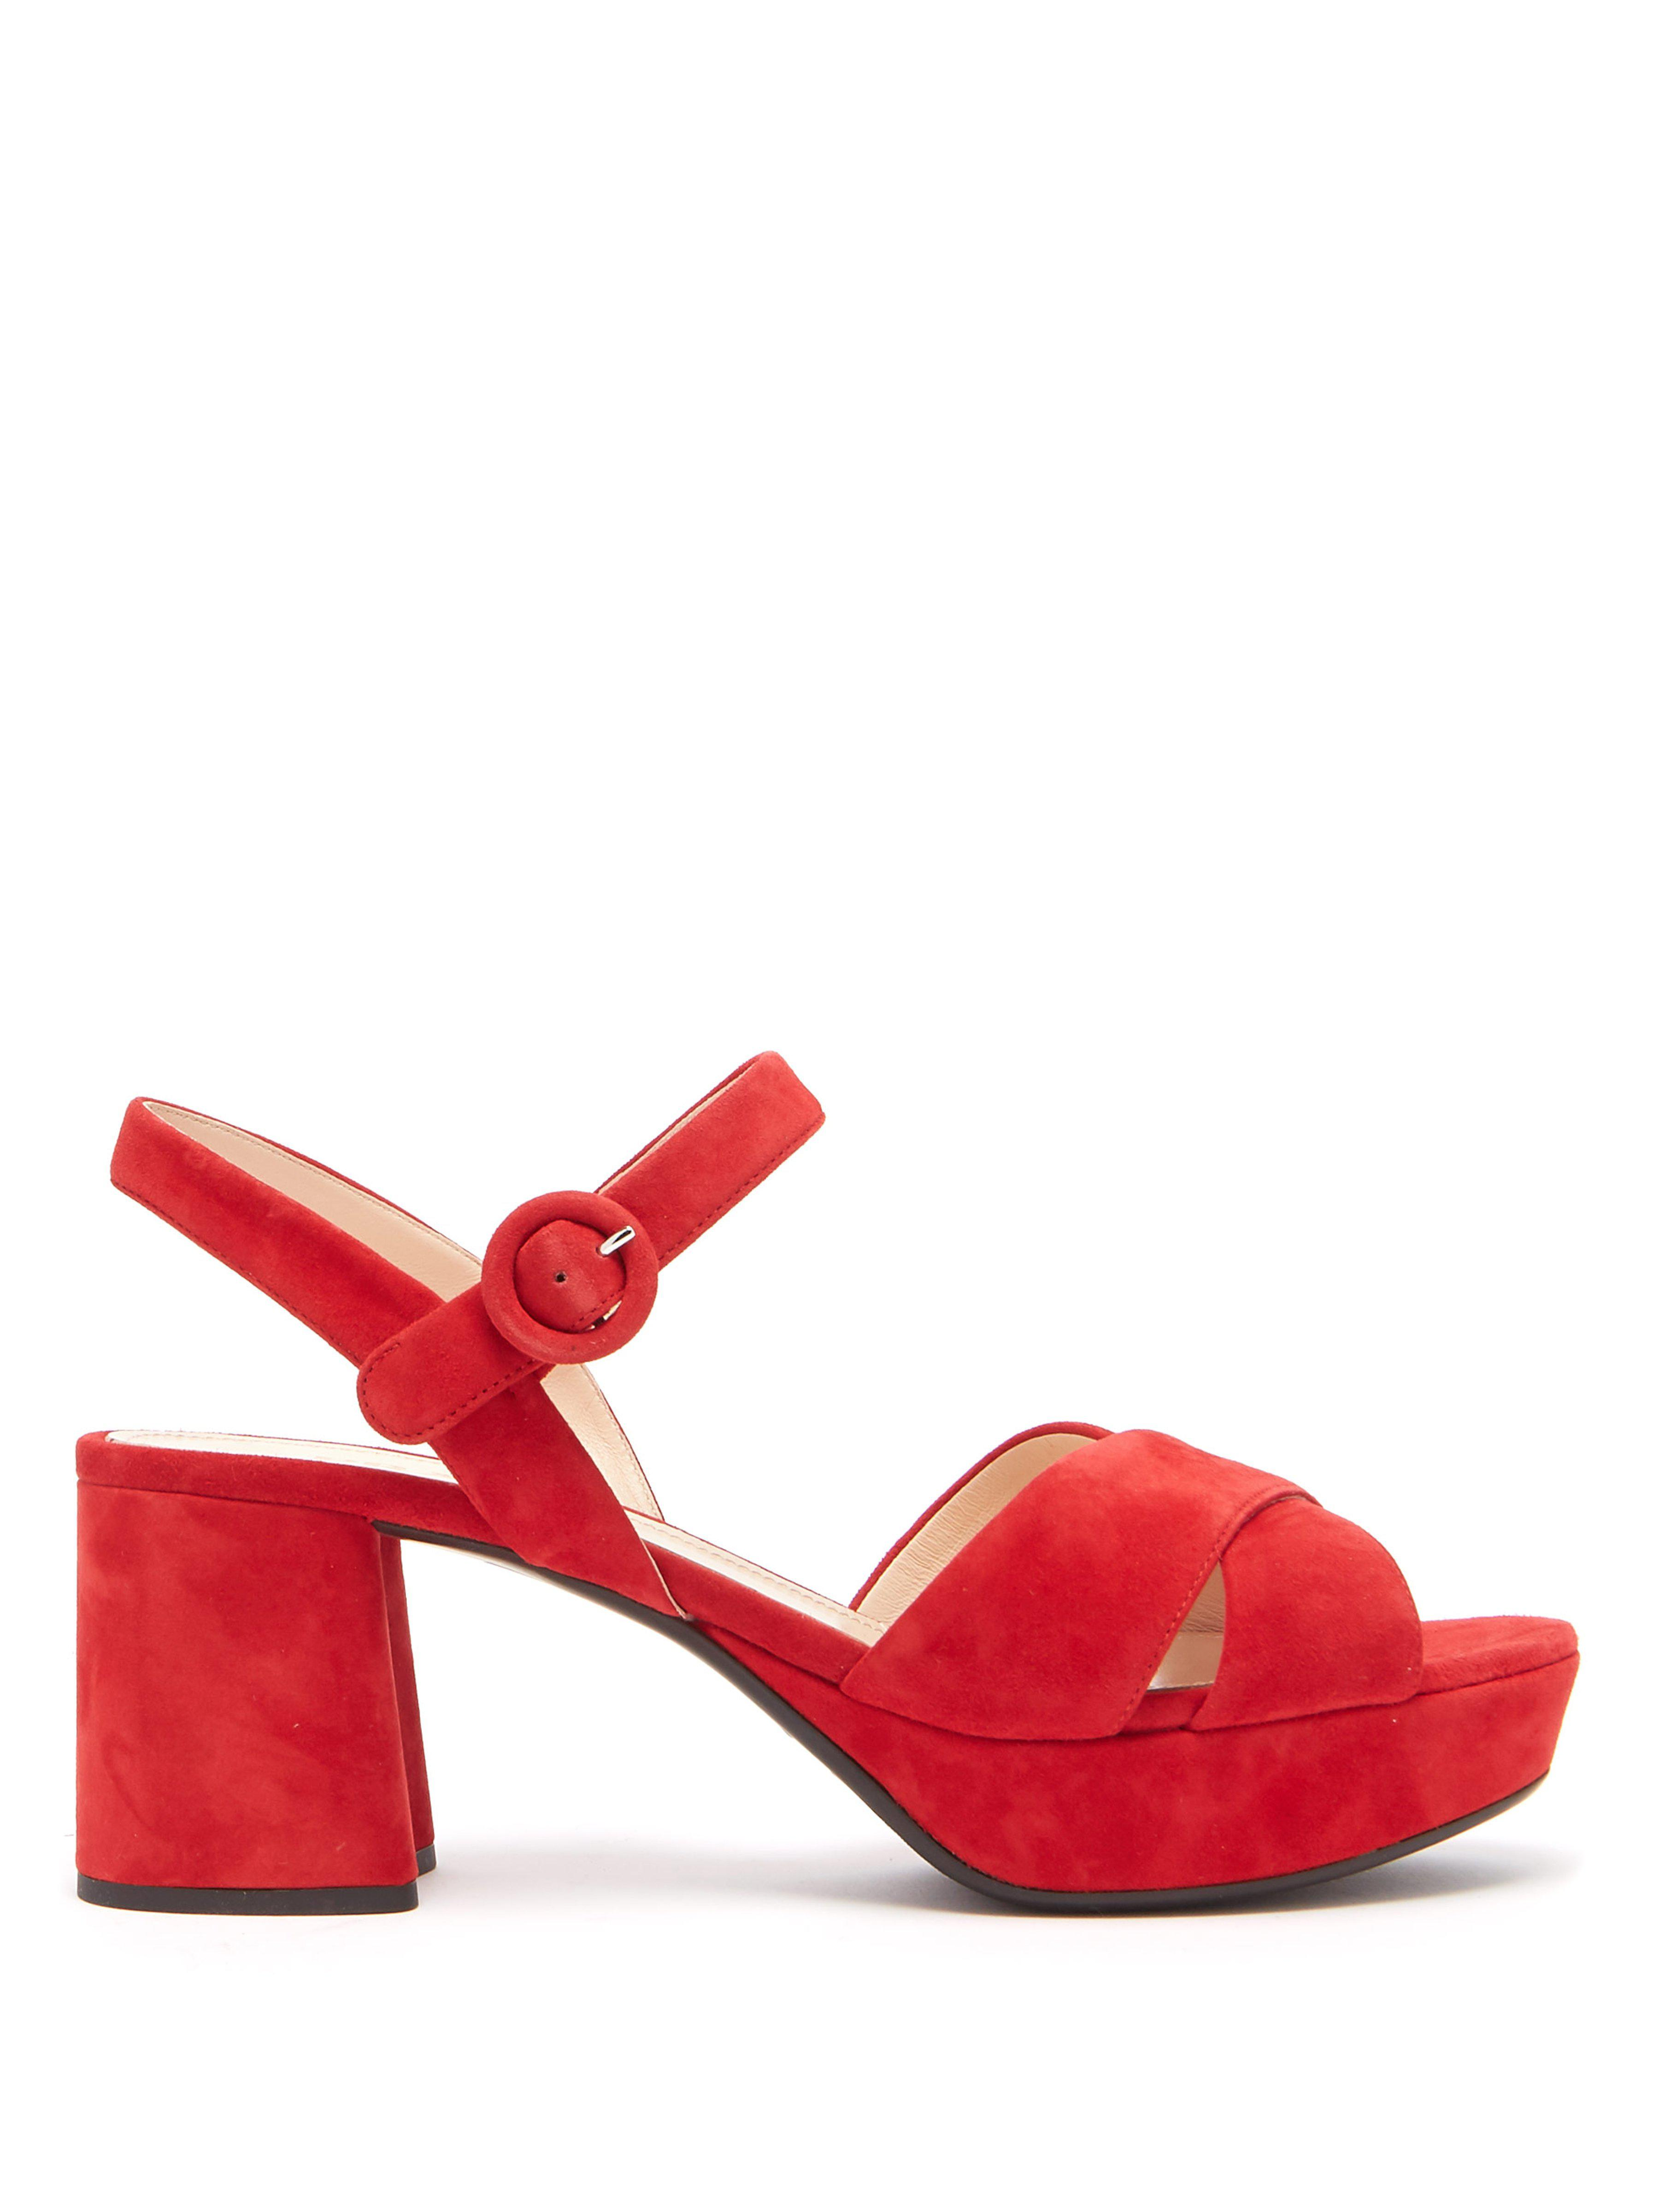 ed0be0607e13 Prada Suede Platform Sandals in Red - Lyst